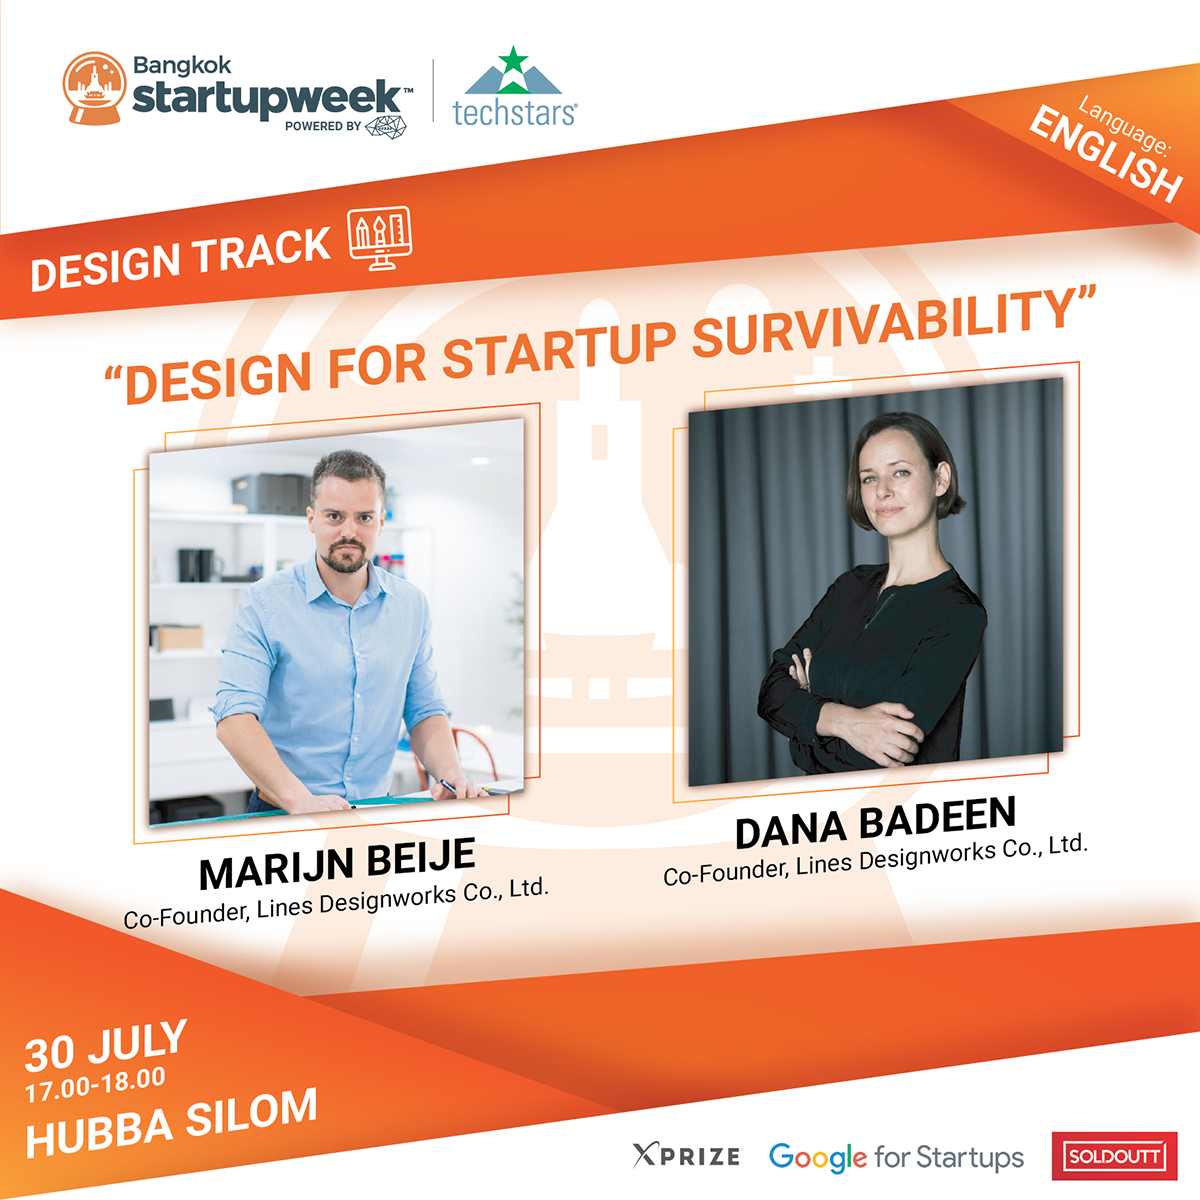 Design for Startup Survivability